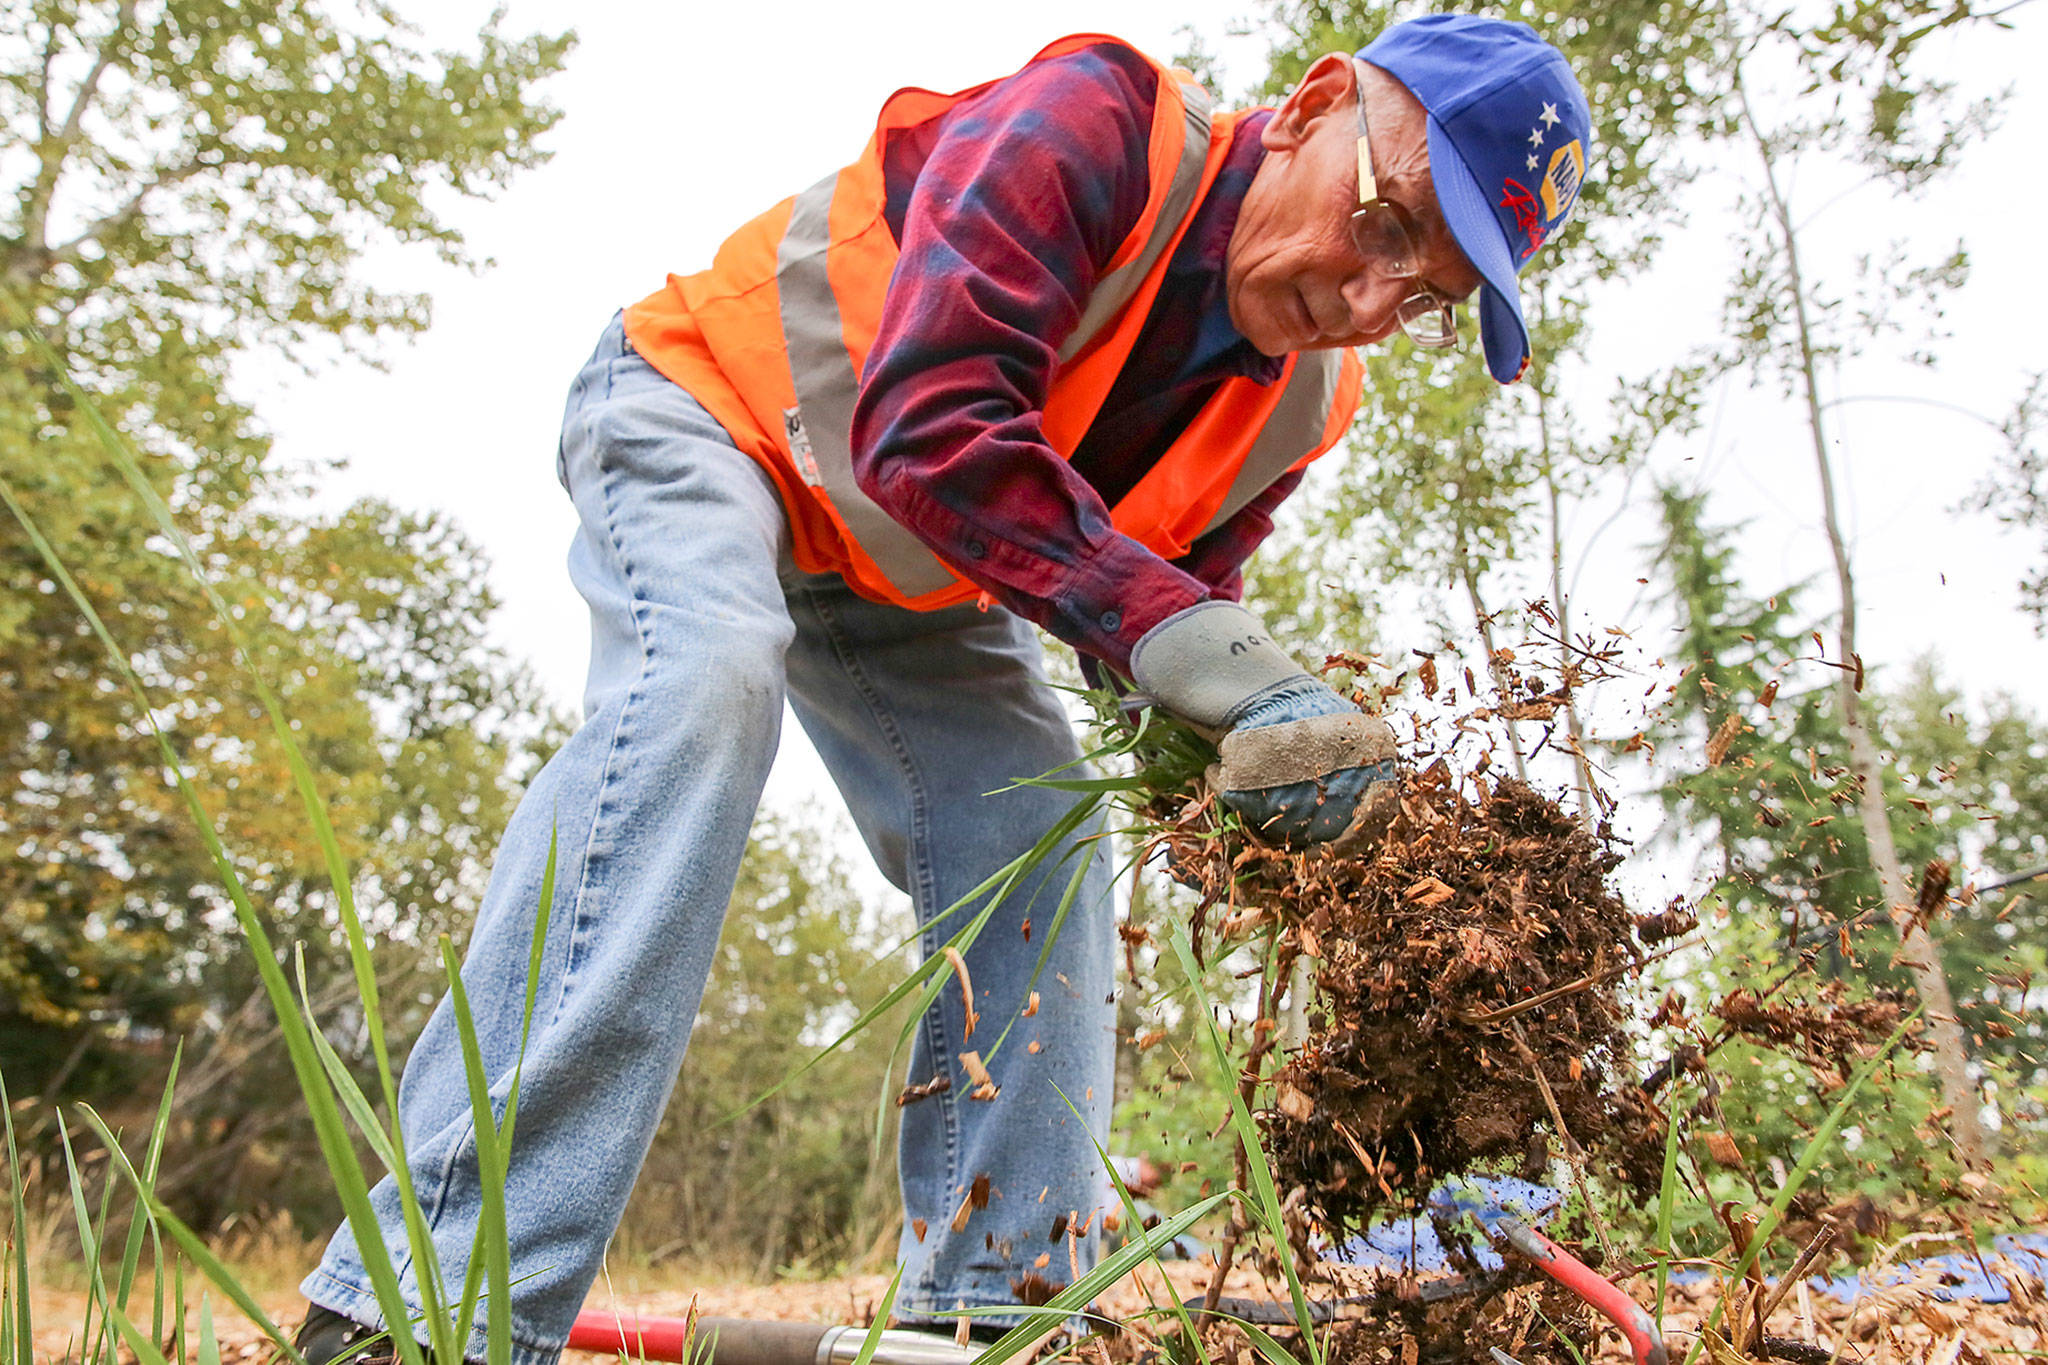 Lou Rector pulls invasive plants Saturday morning at Hannabrook Park in Everett on August 17, 2019. (Kevin Clark / The Herald)